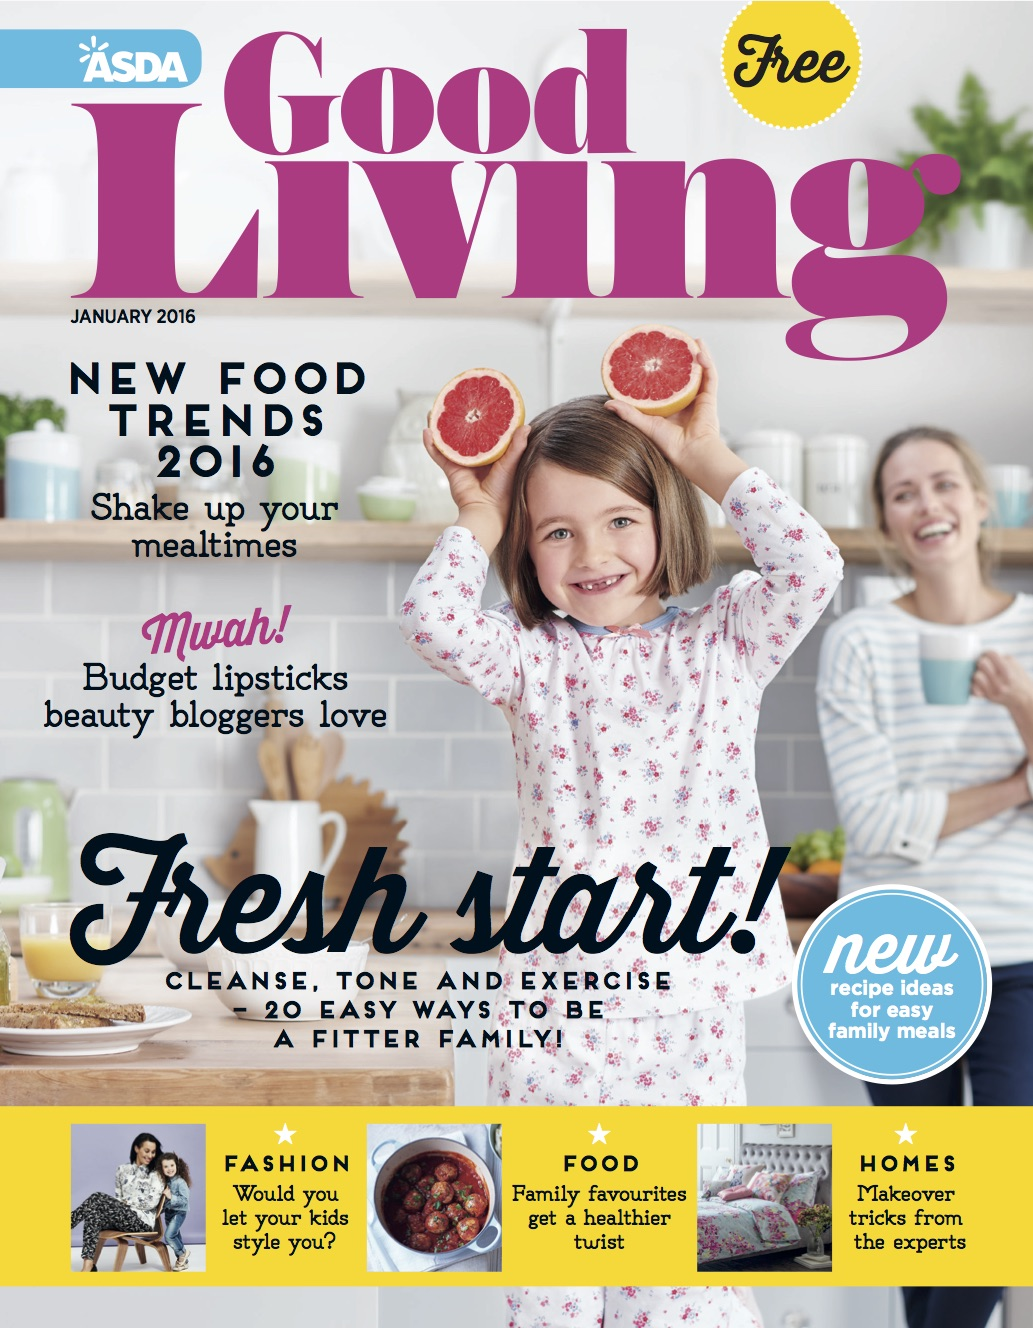 hearst magazines uk relaunches asda magazine bolsters